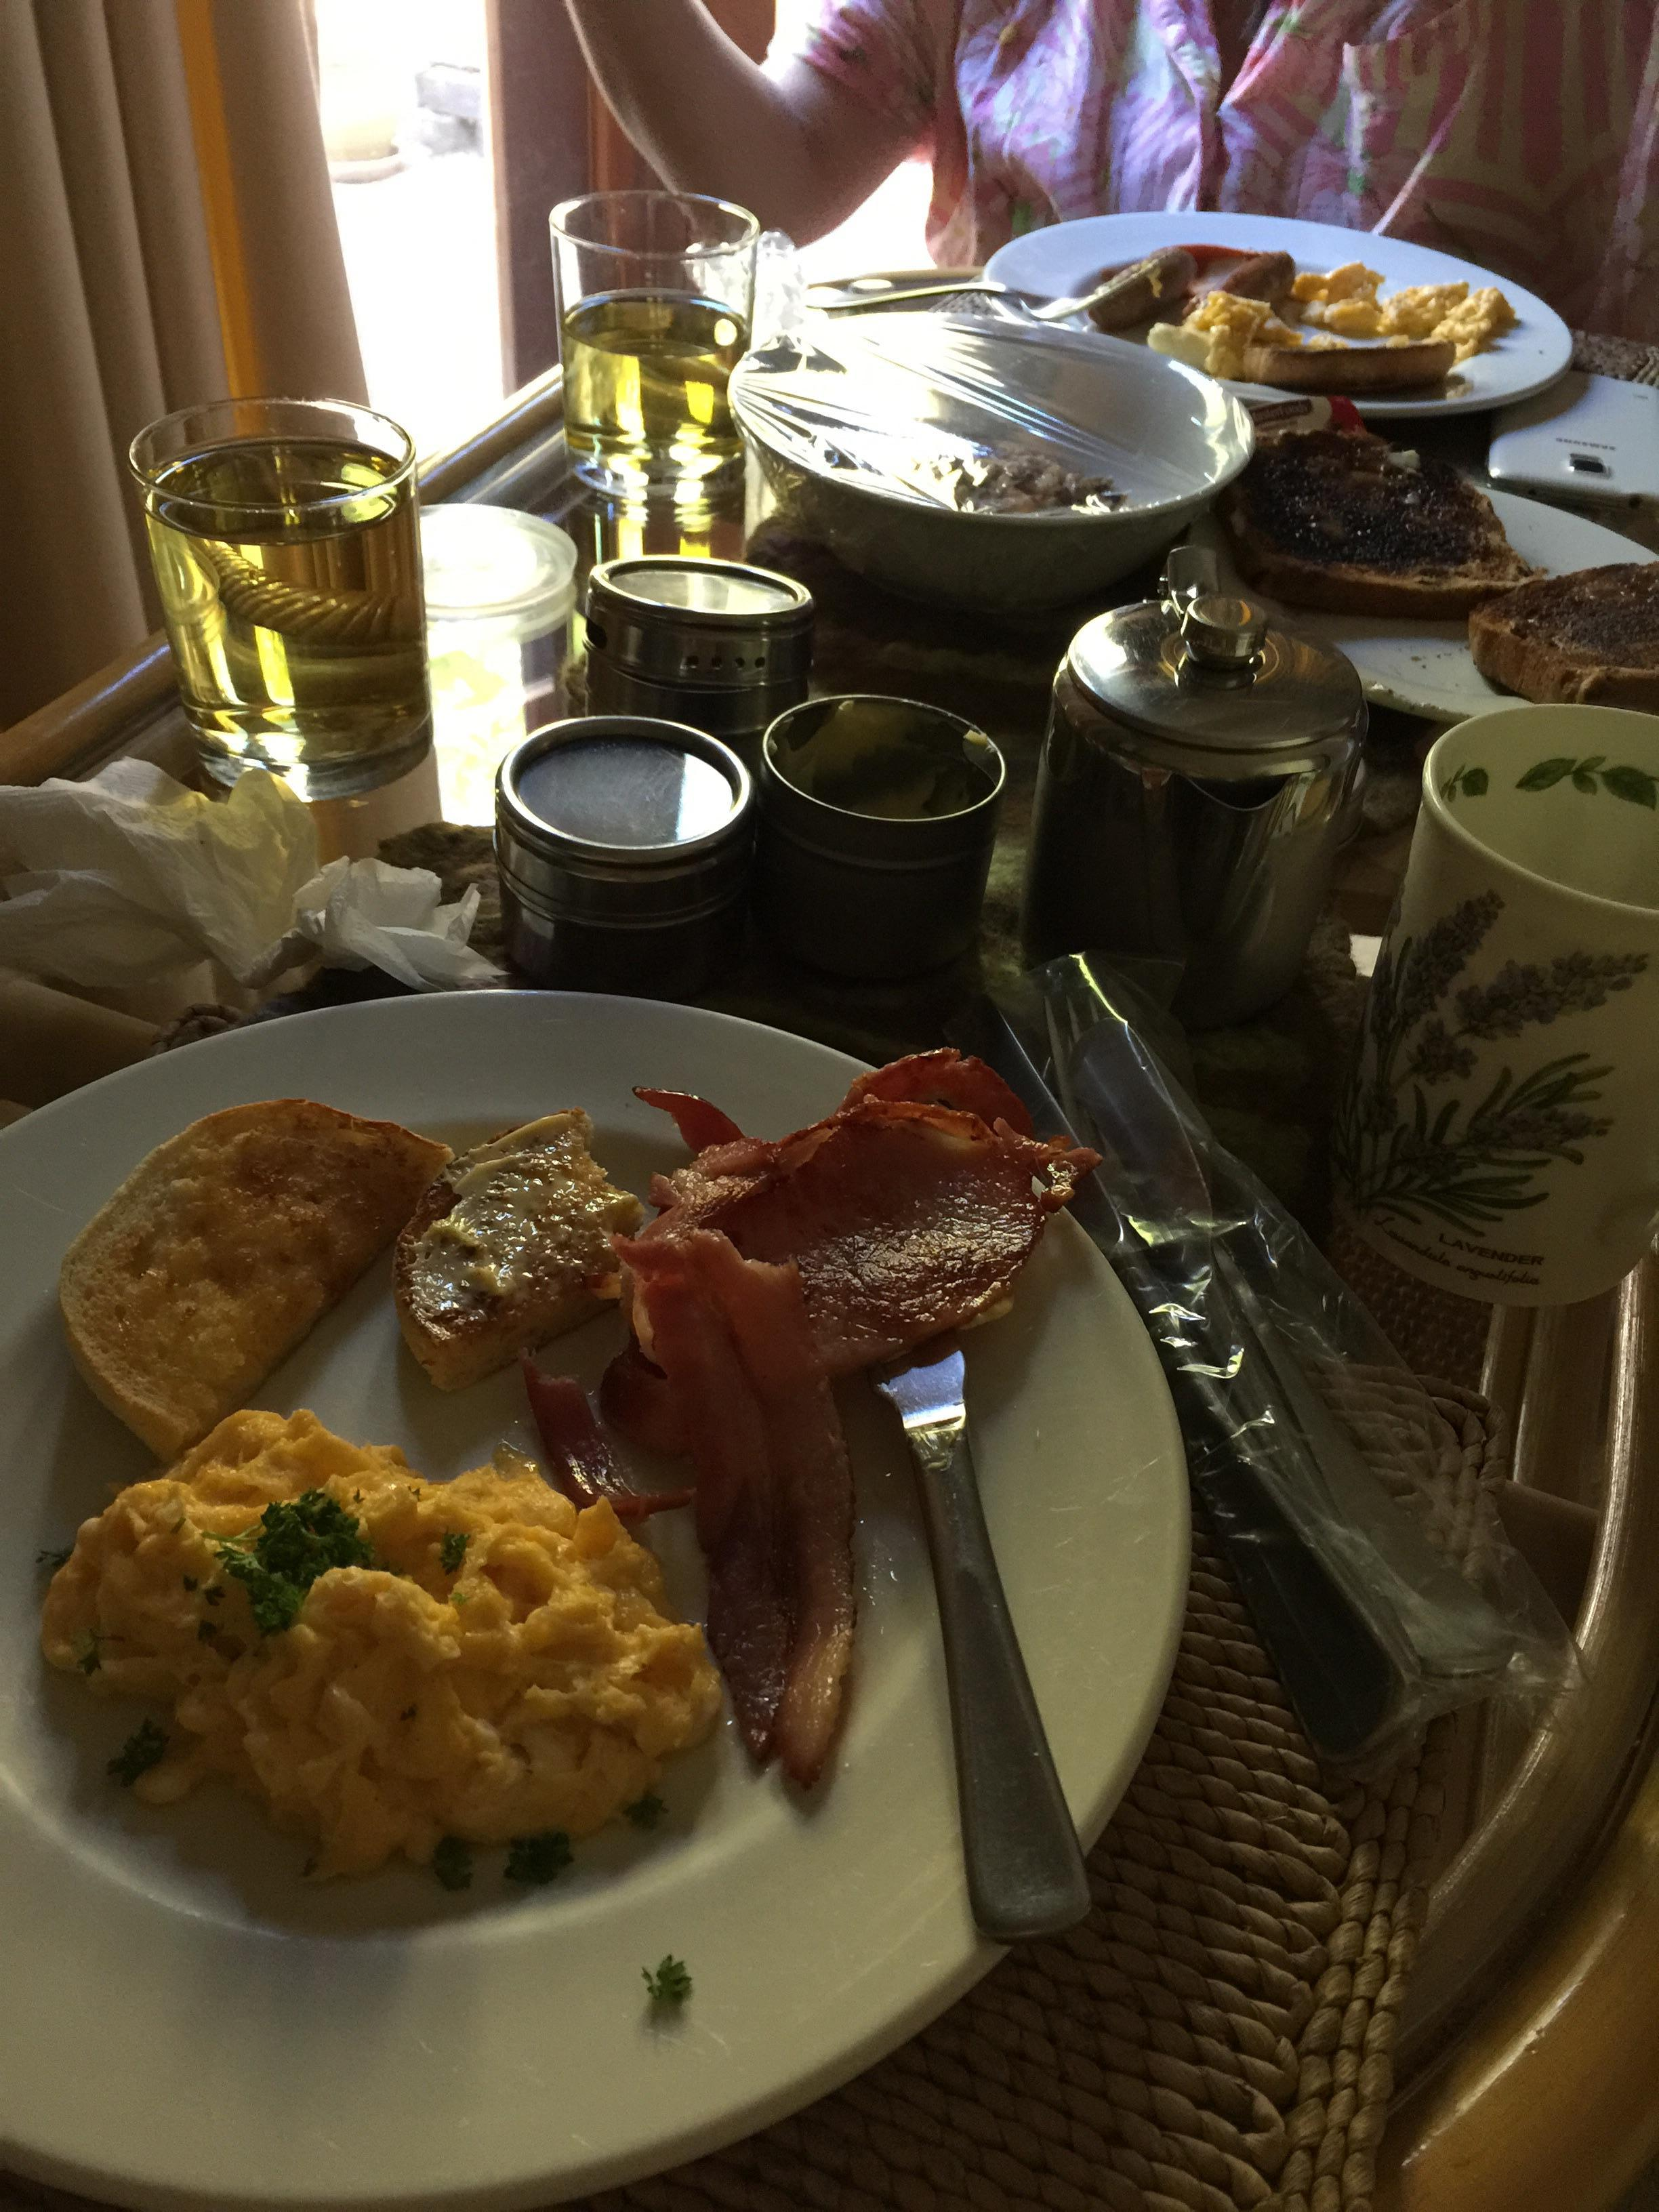 Our beautiful hot breakfast in the lavender room.